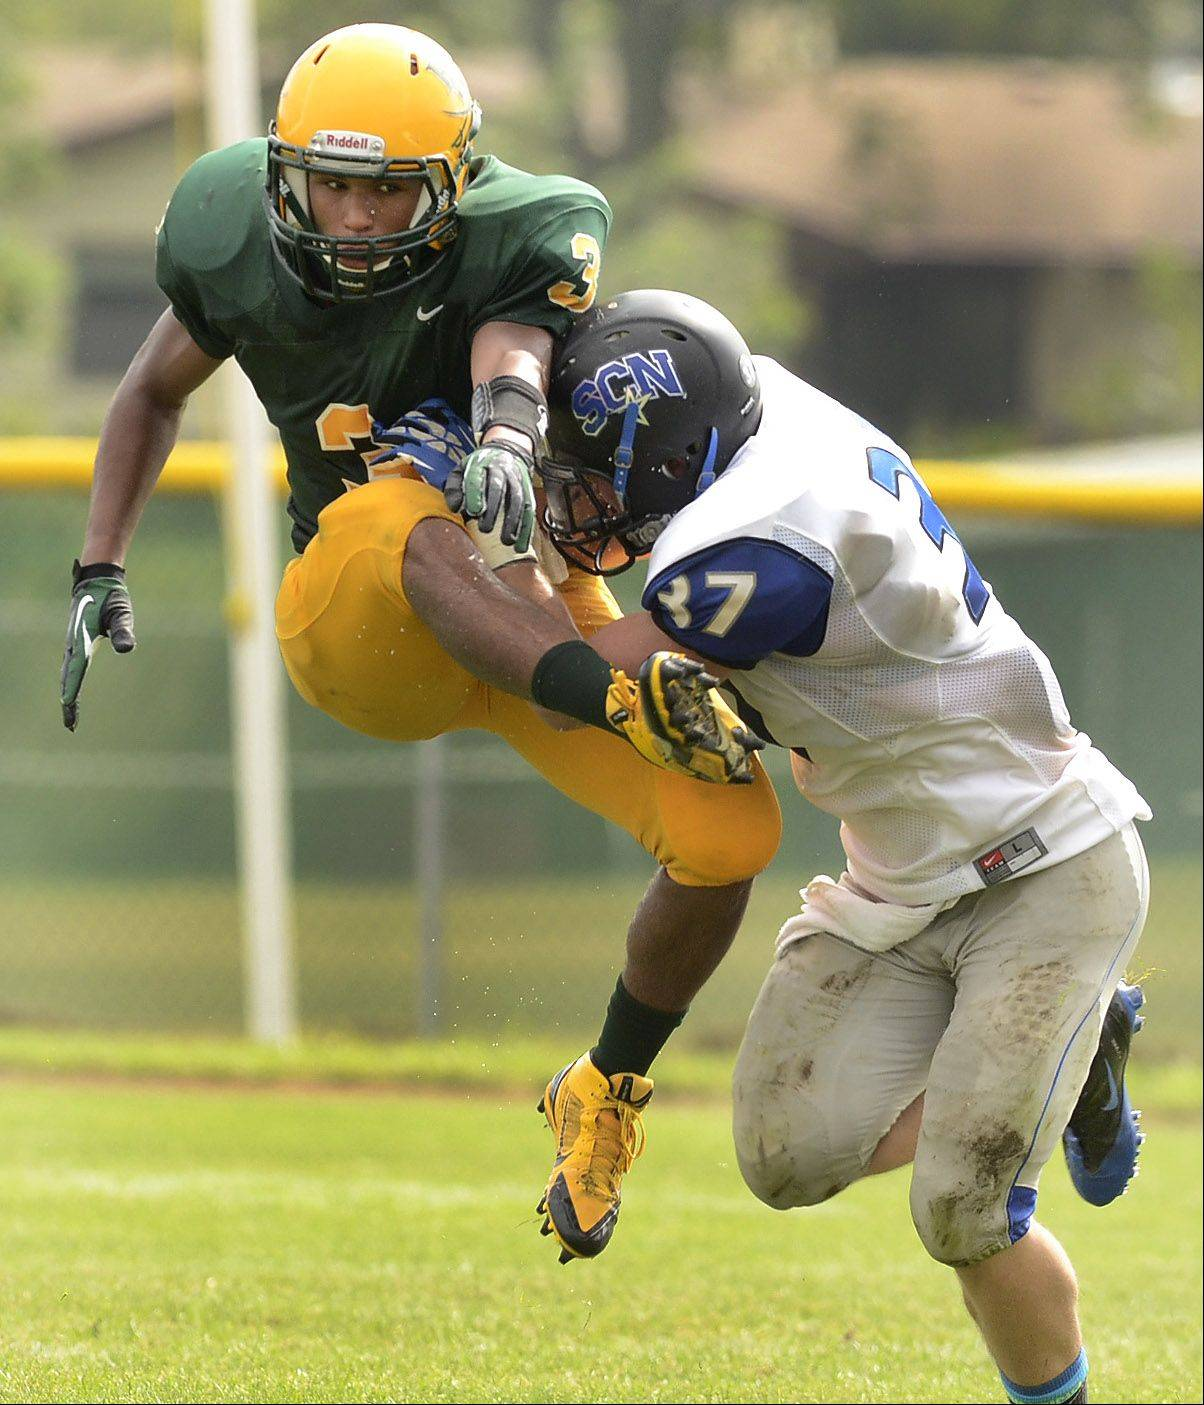 Elk Grove's Travon Royal just gets a kick away, narrowly avoiding a block by Reece Conroyd of St. Charles North.